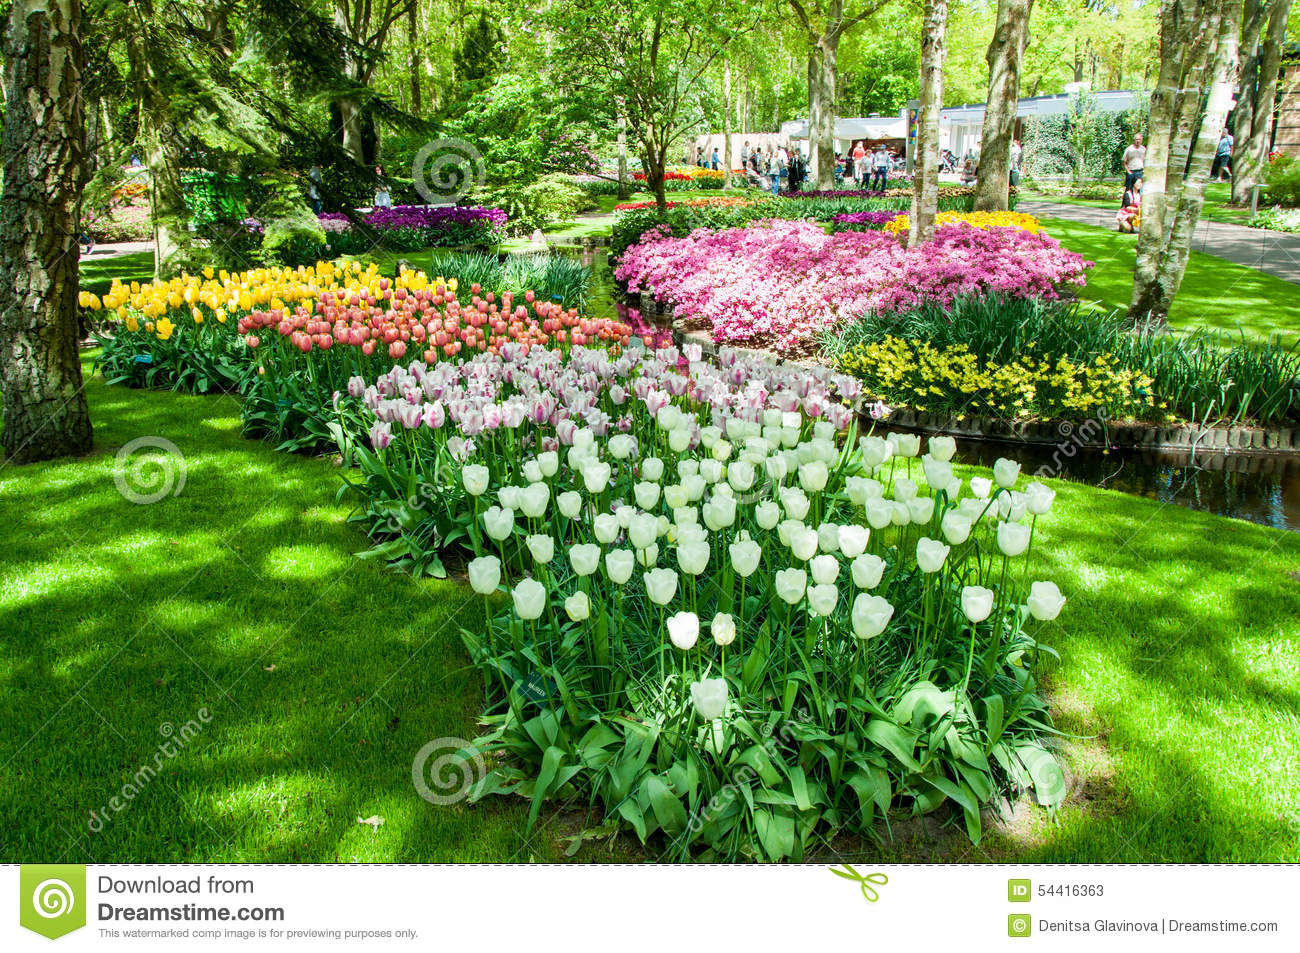 le ressort color fleurit dans le jardin keukenhof pays bas de la hollande photo stock image. Black Bedroom Furniture Sets. Home Design Ideas